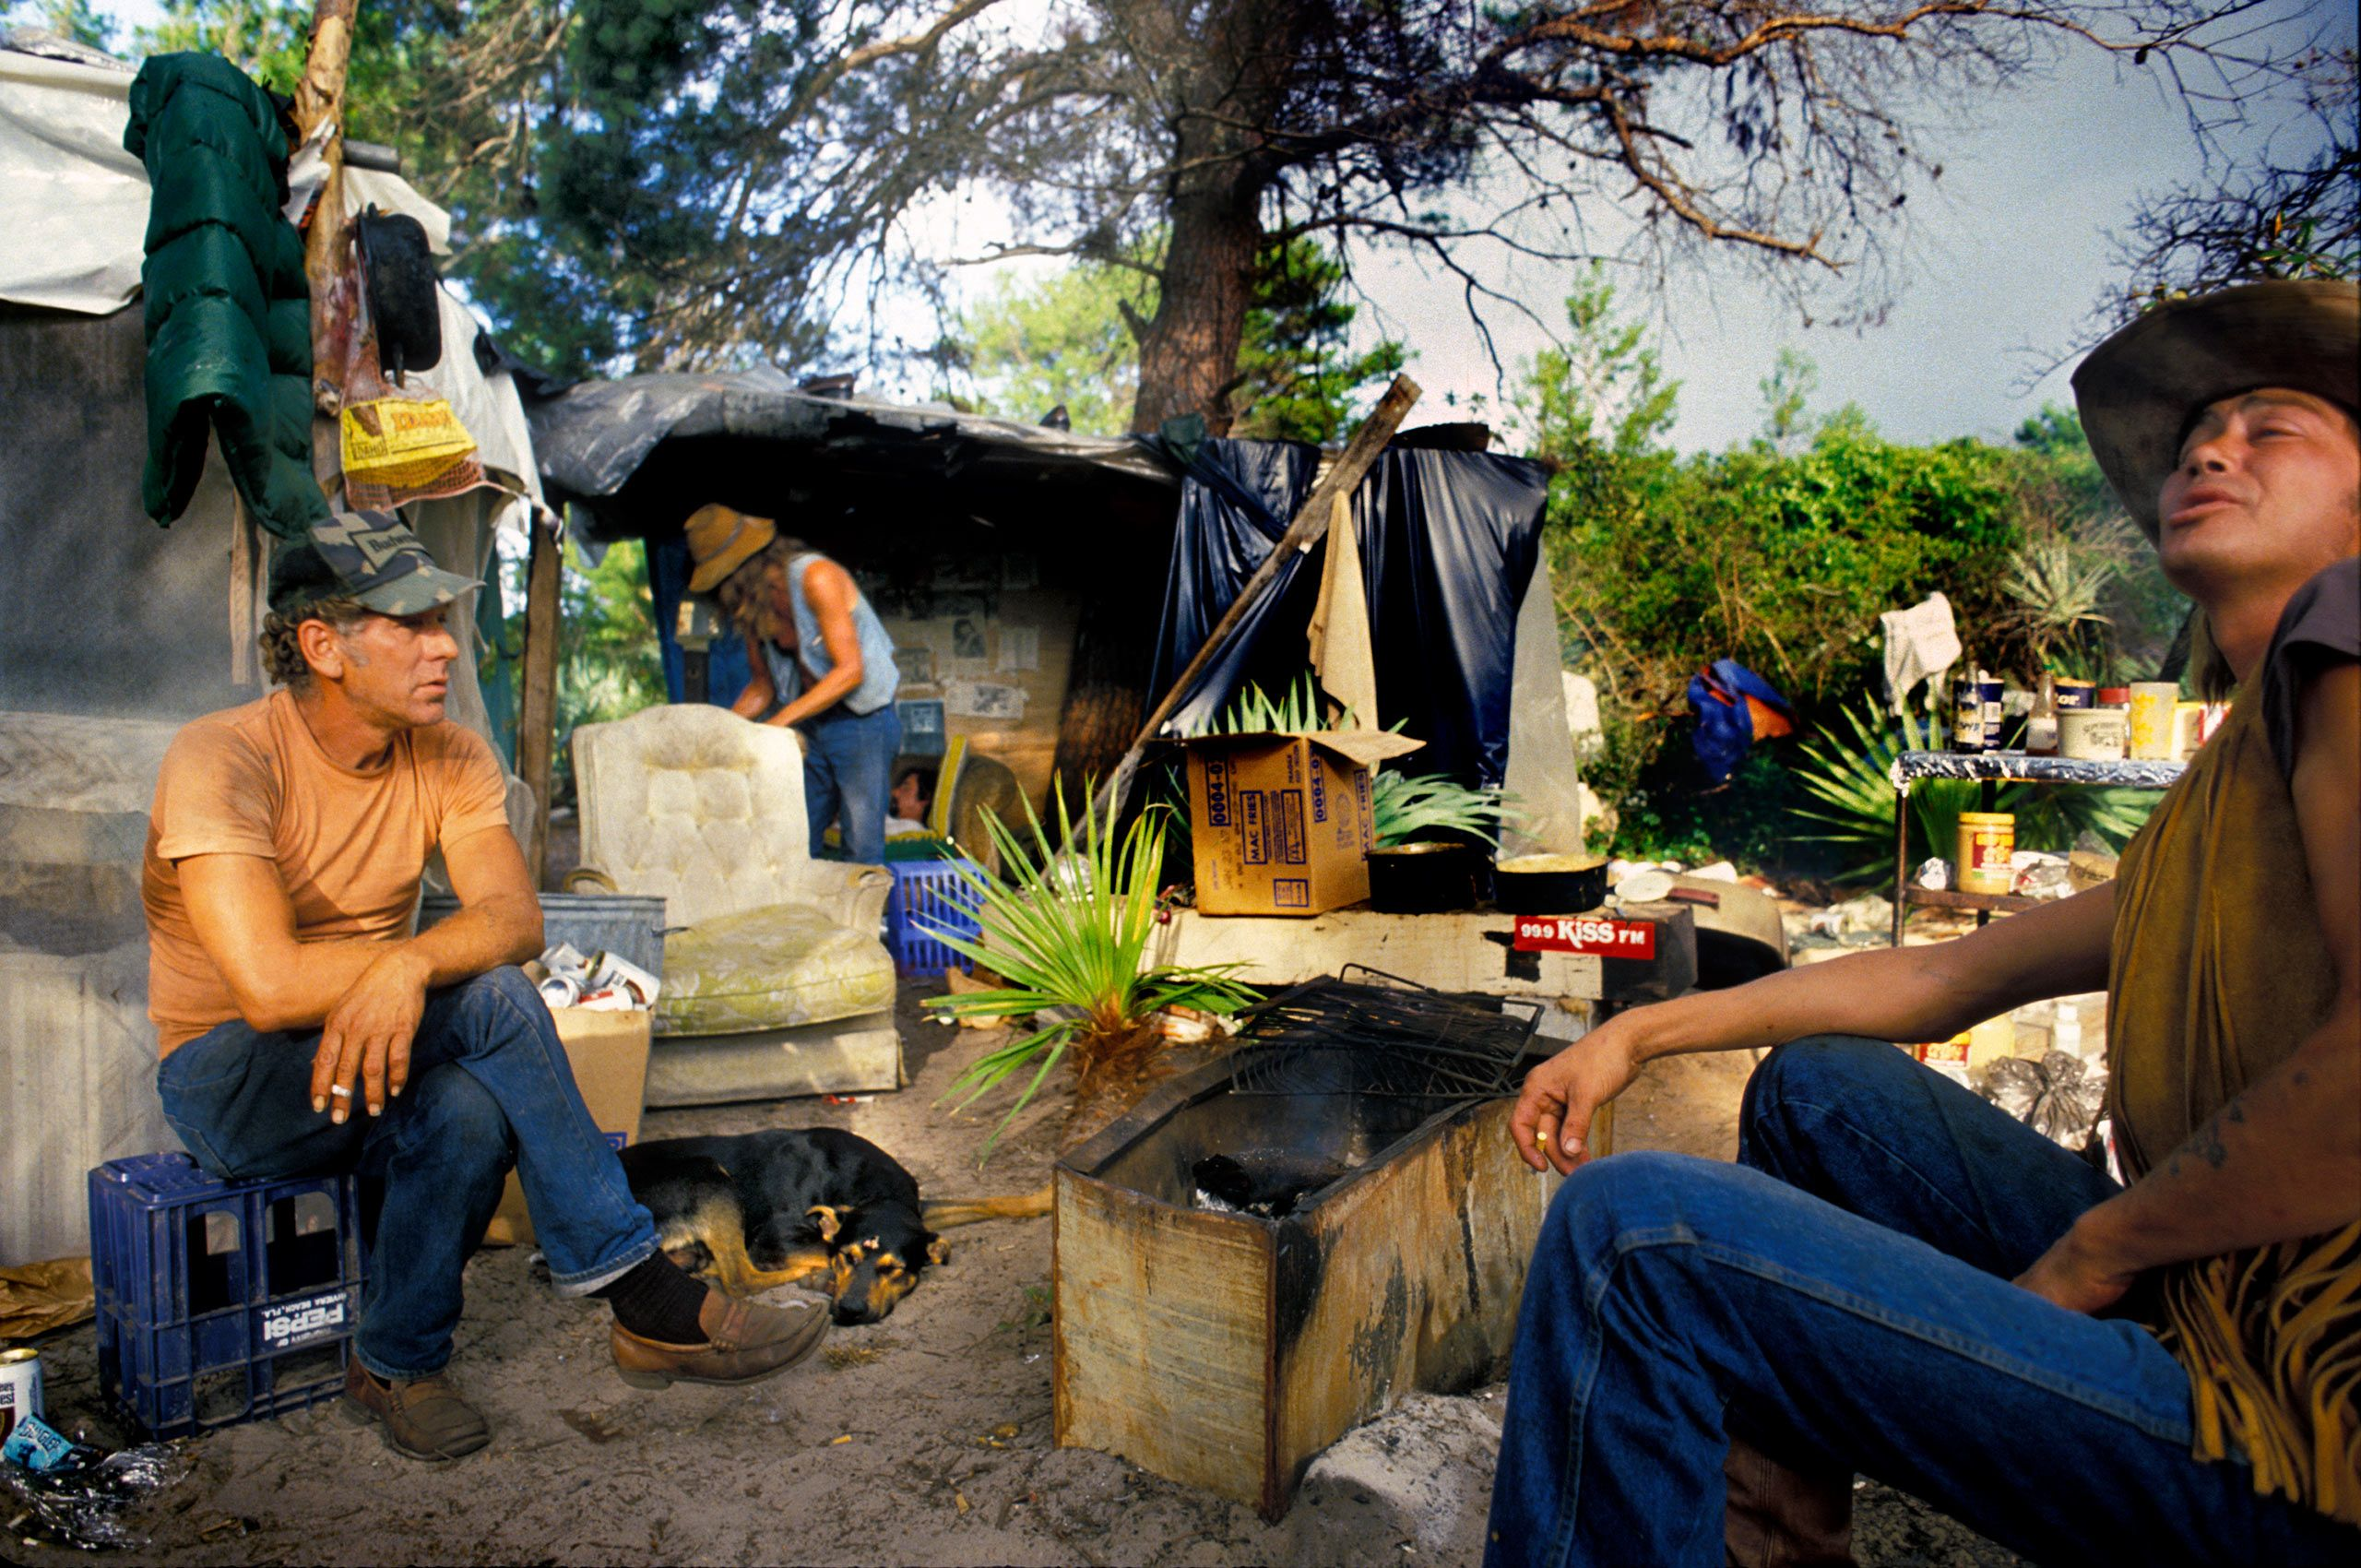 06BHomeless-Camp-Fort-Lauderdale.jpg